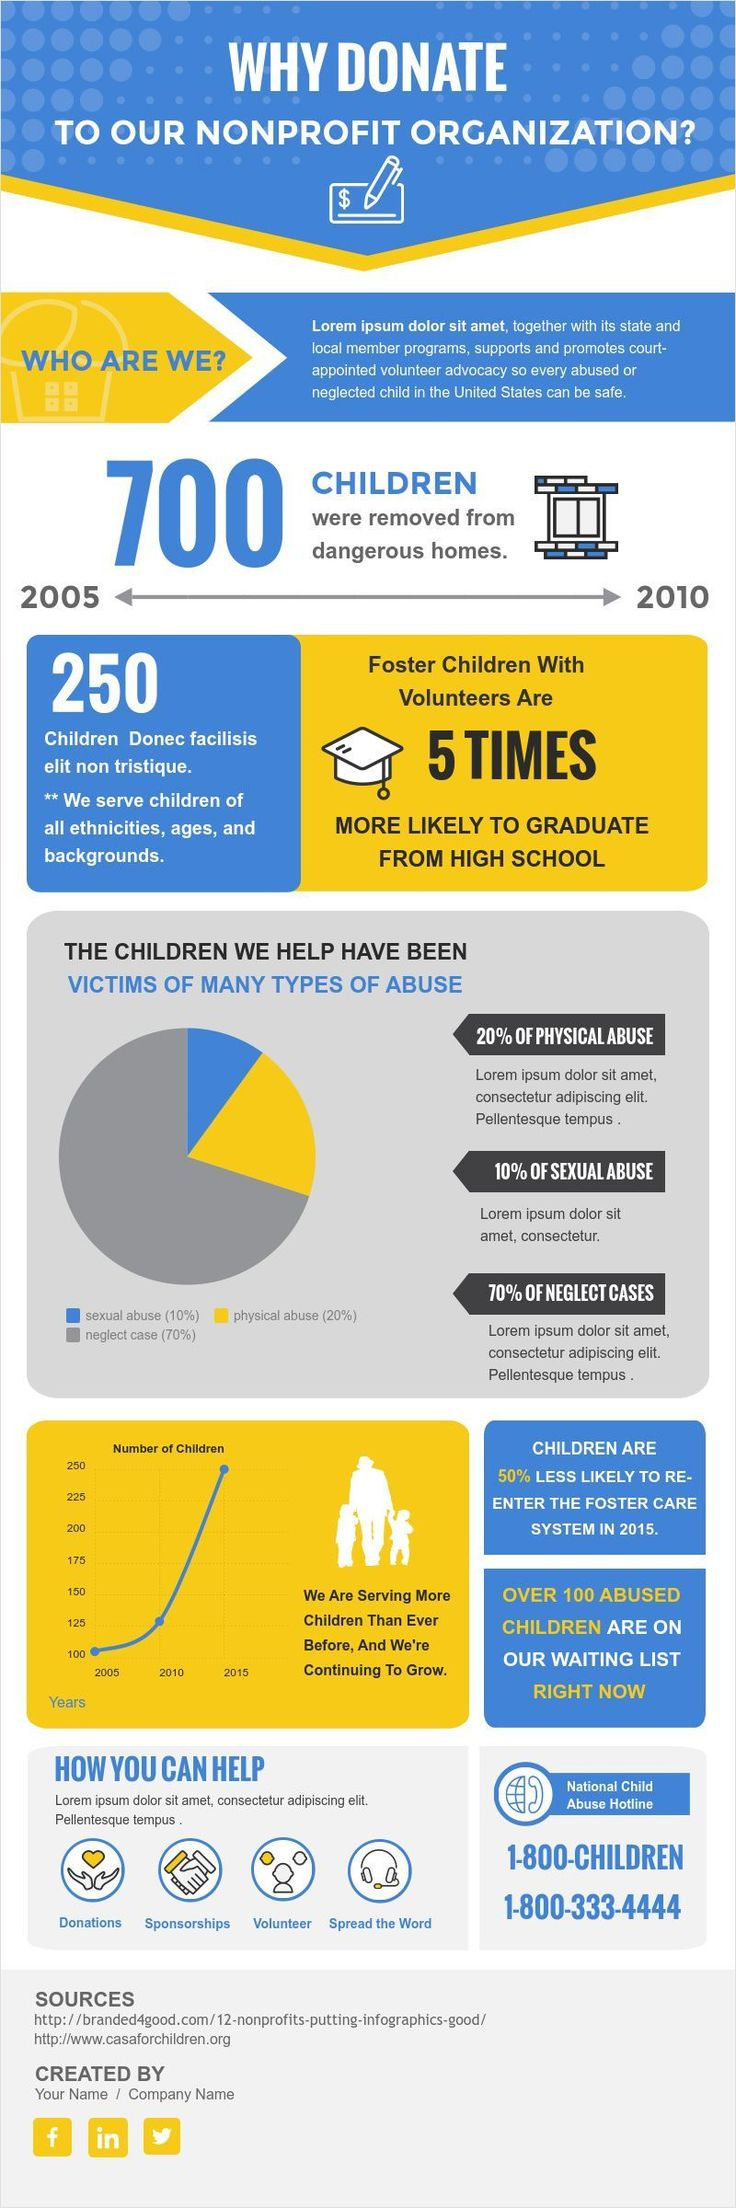 Spread the word about your nonprofit on social media using infographics! Here are some infographic templates you can use in Visme